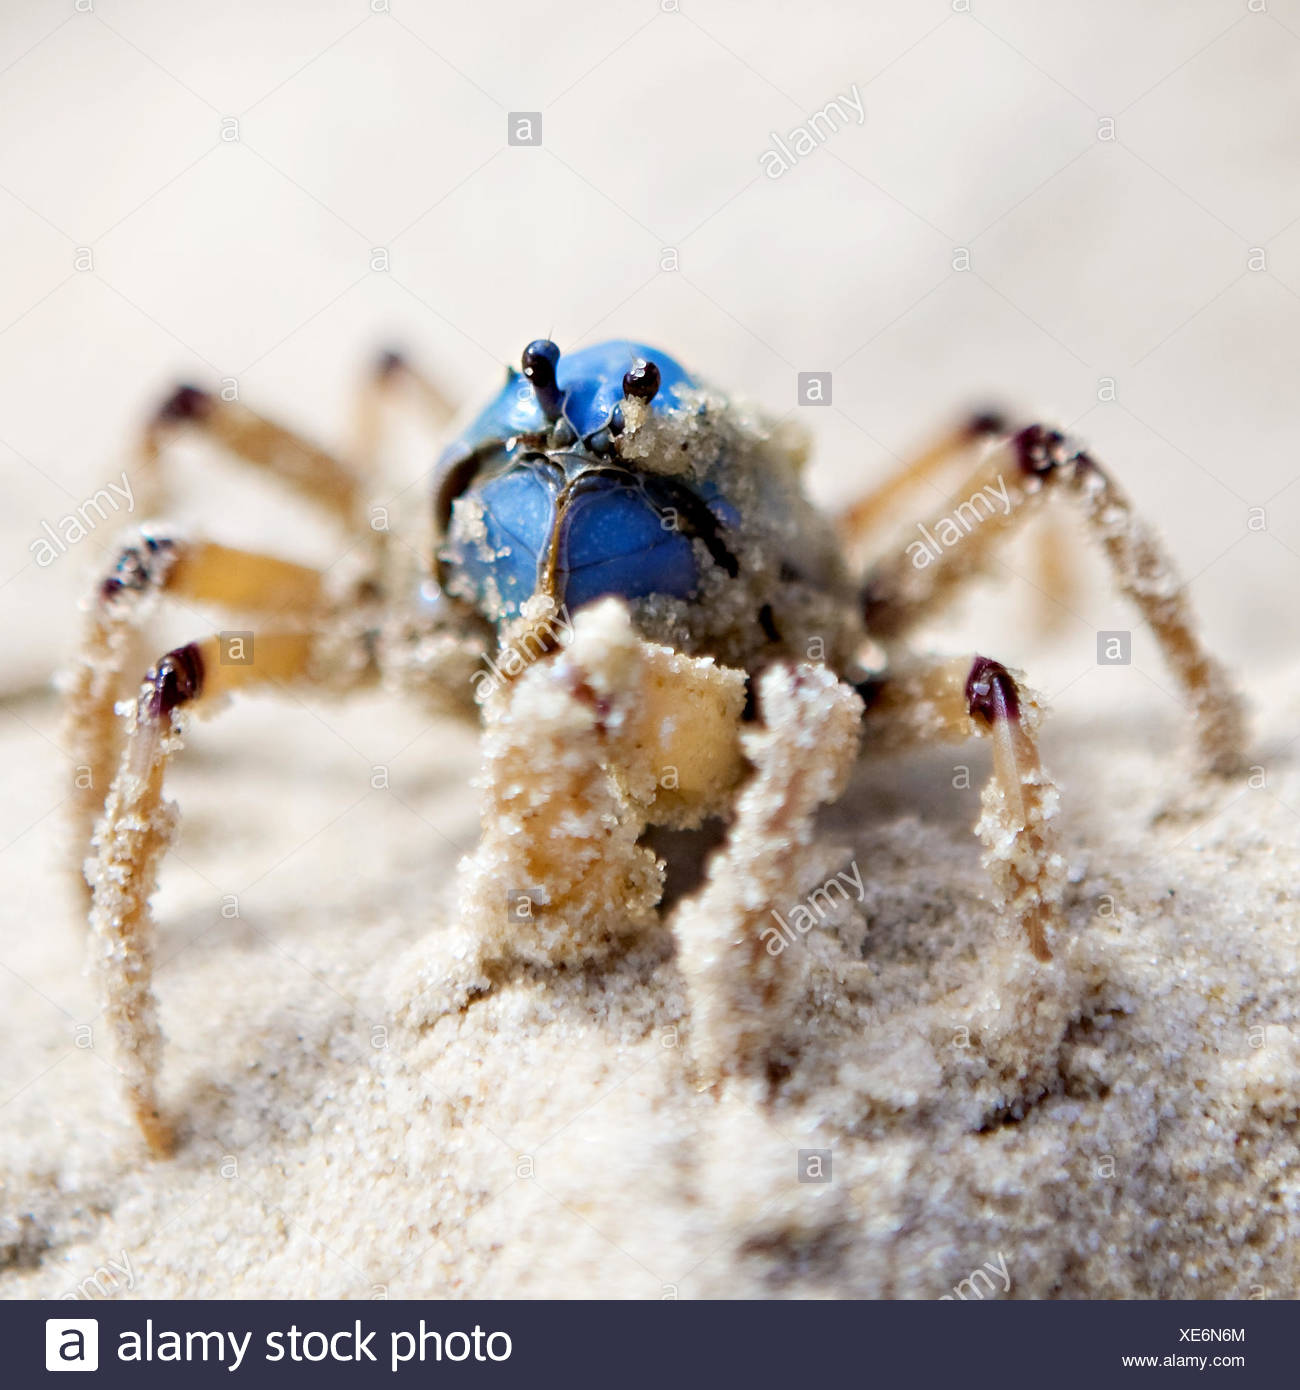 Close up of a soldier crab in the sand, Fraser Island, Australia - Stock Image